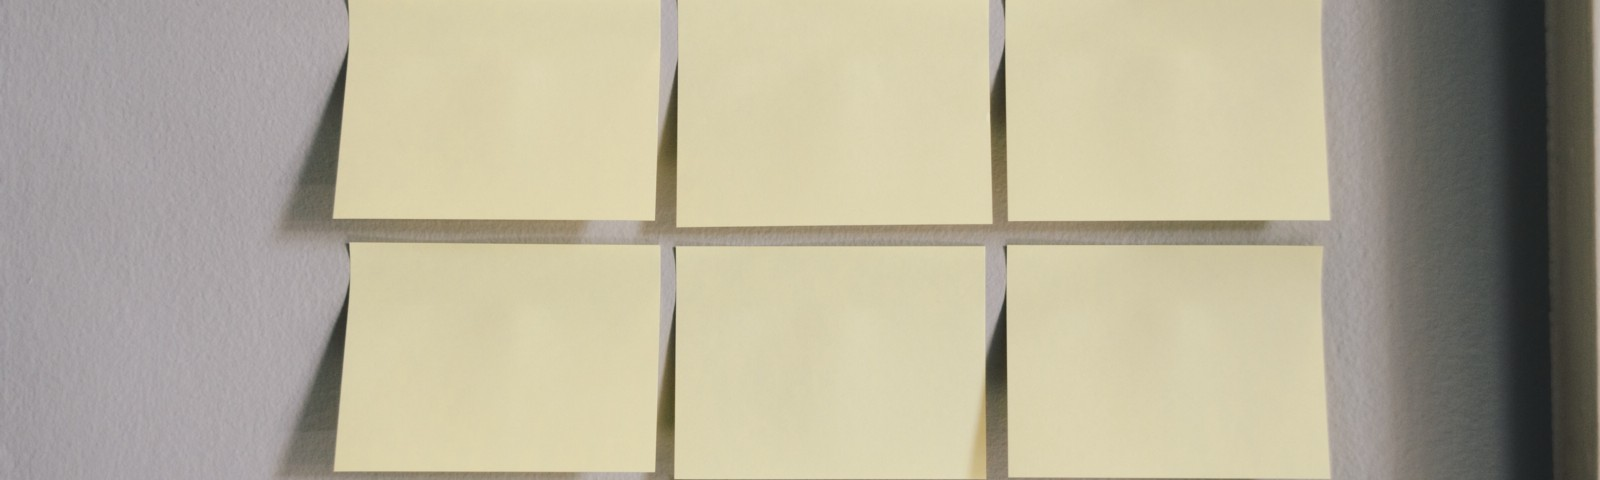 A woman placing nine blank sticky notes like our subconscious mind.